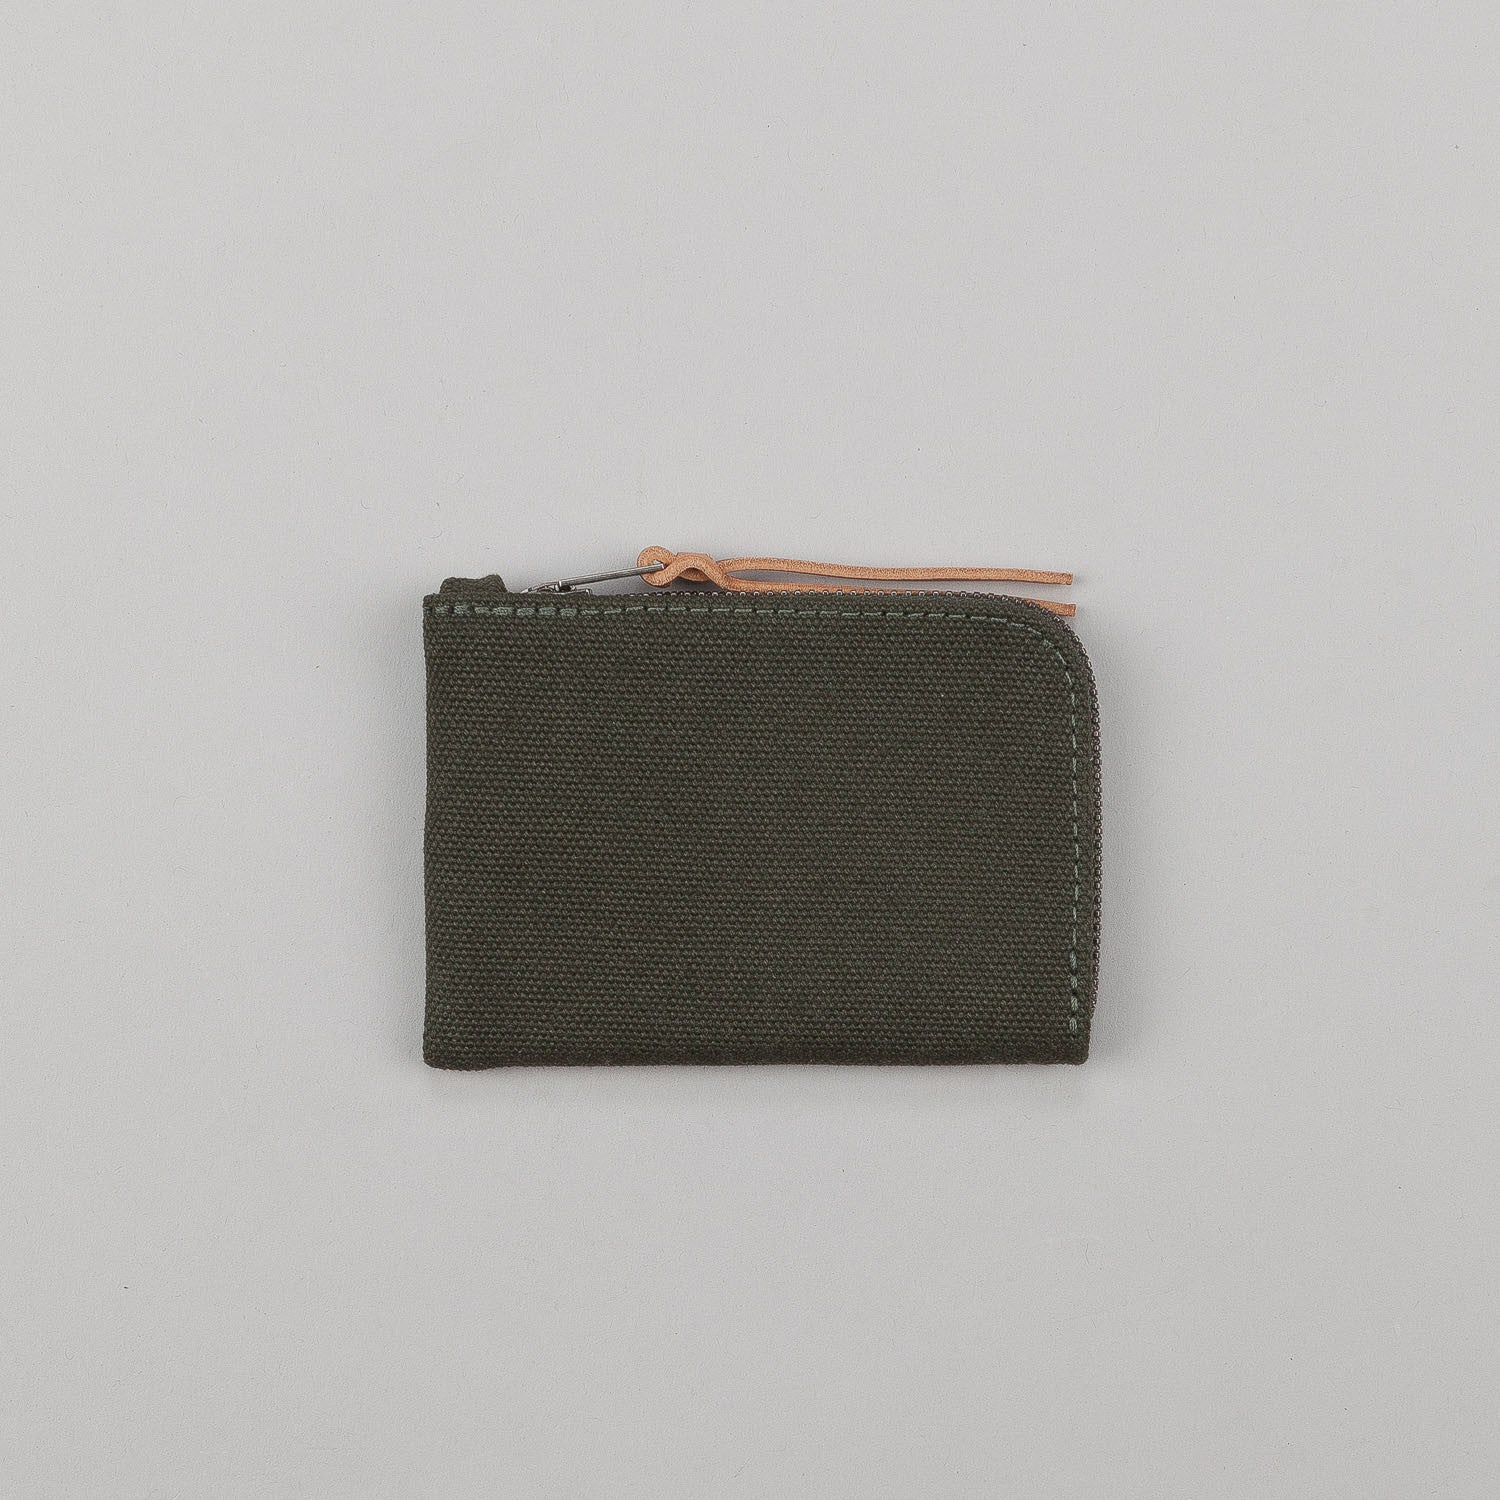 Makr Canvas Zip Slim Wallet - Green